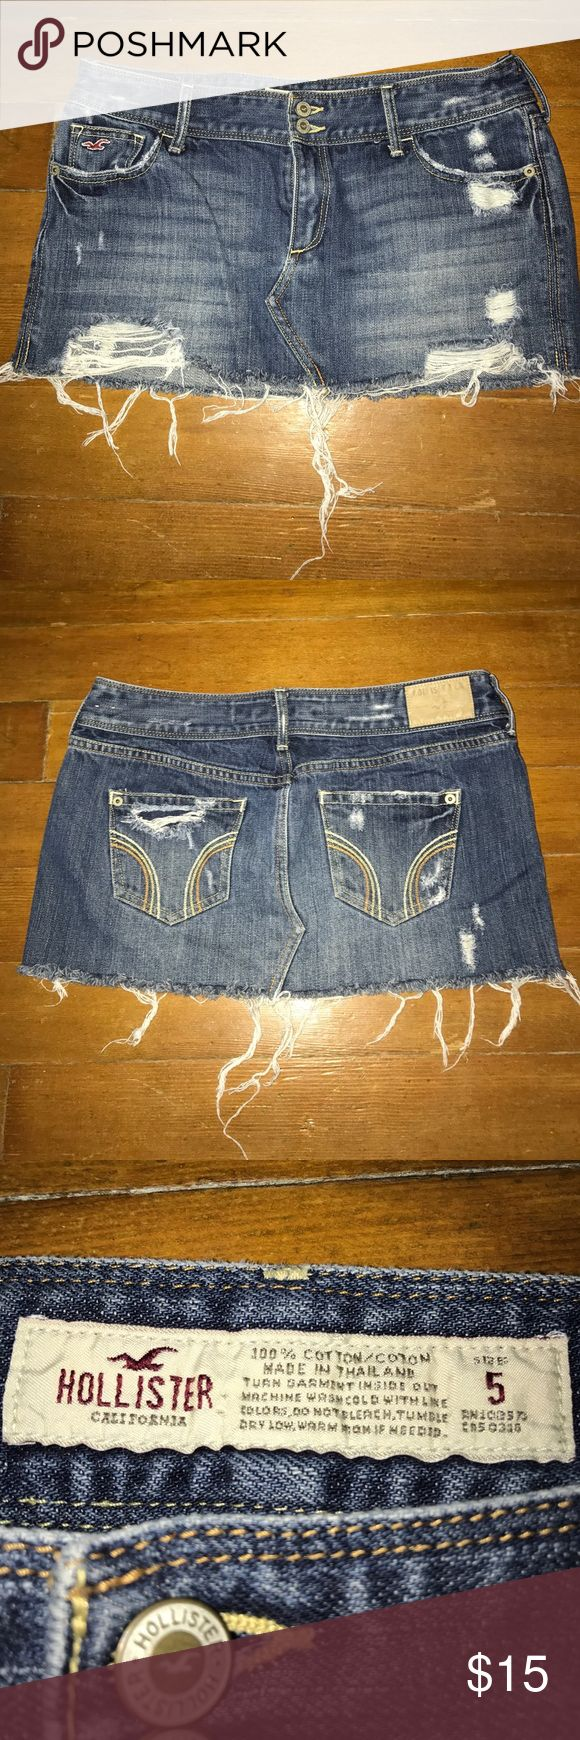 Hollister low-Rise Denim Mini Skirt This cute mini skirt has a vintage look, featuring medium wash denim with fading and whiskering, destroy detailing, a frayed hem and iconic back pocket stitching. Comes from a smoke free home. Hollister Skirts Mini